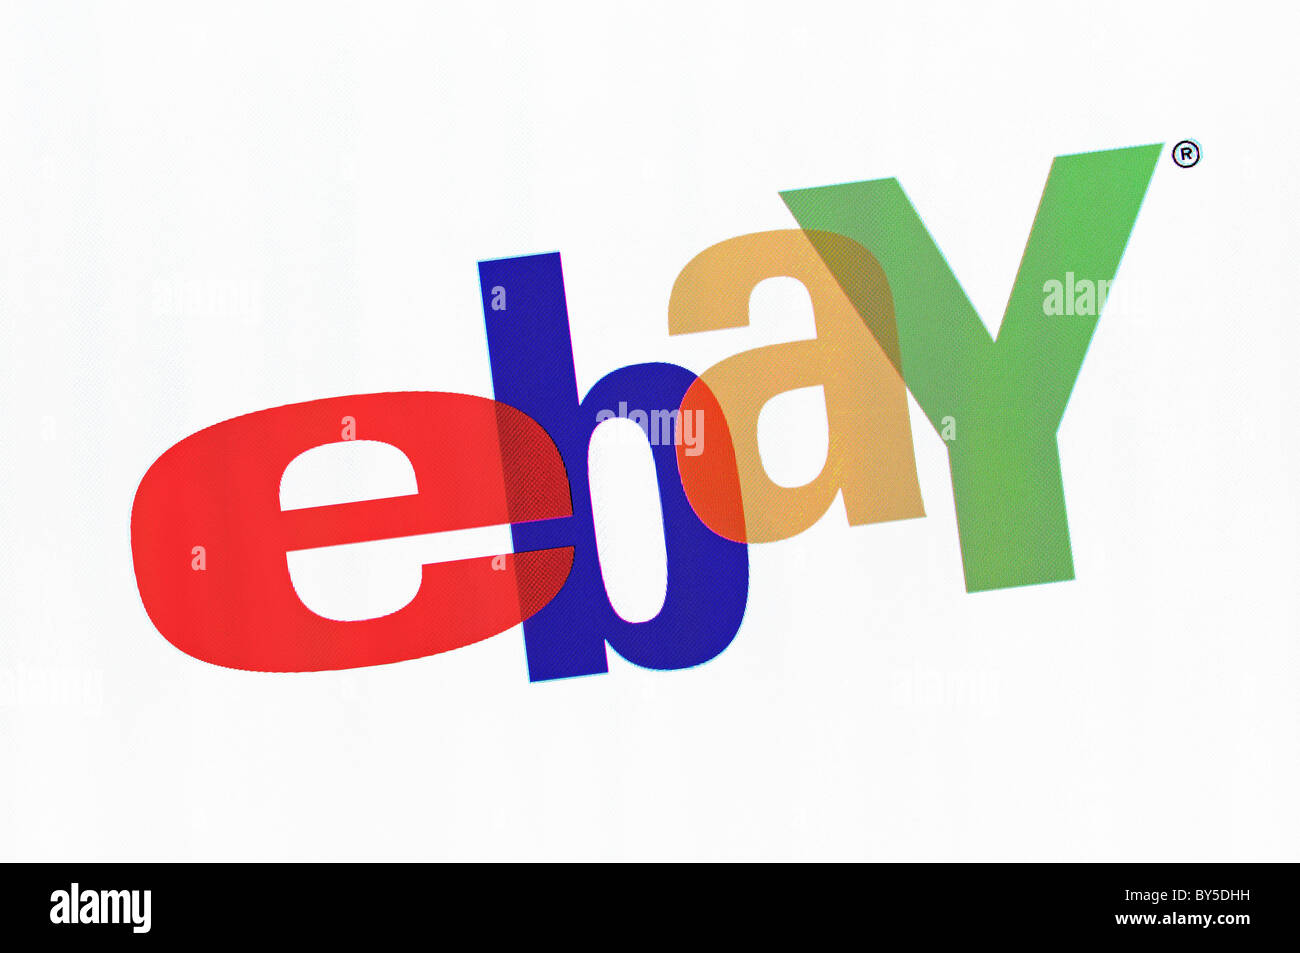 Ebay Logo Screenshot - Stock Image